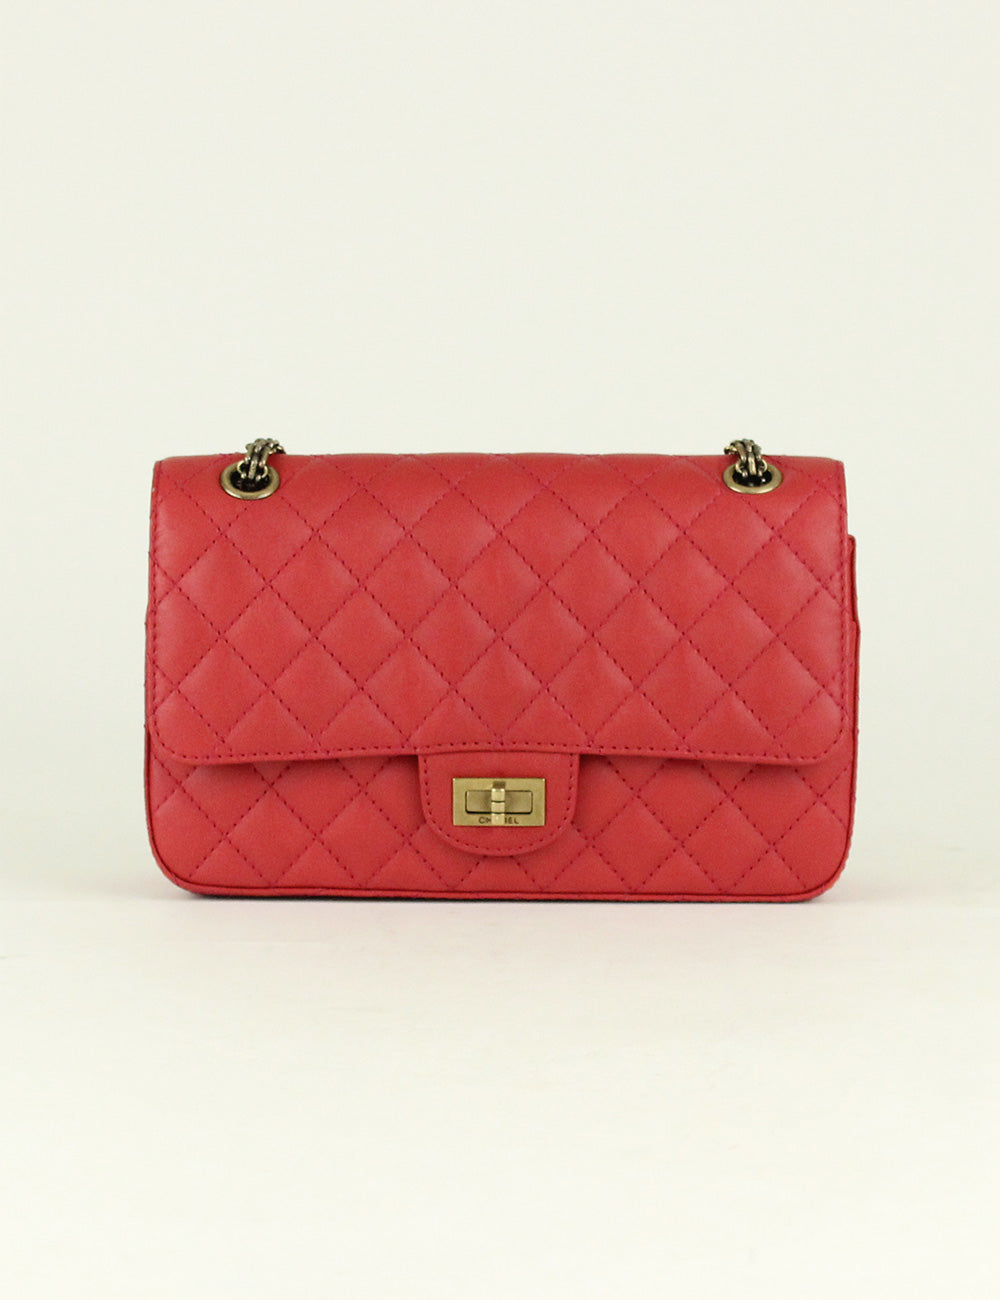 59e55f7fbda5 Chanel Classic Reissue 2.55 Quilted 225 Double Flap Bag – Brand Shop ...